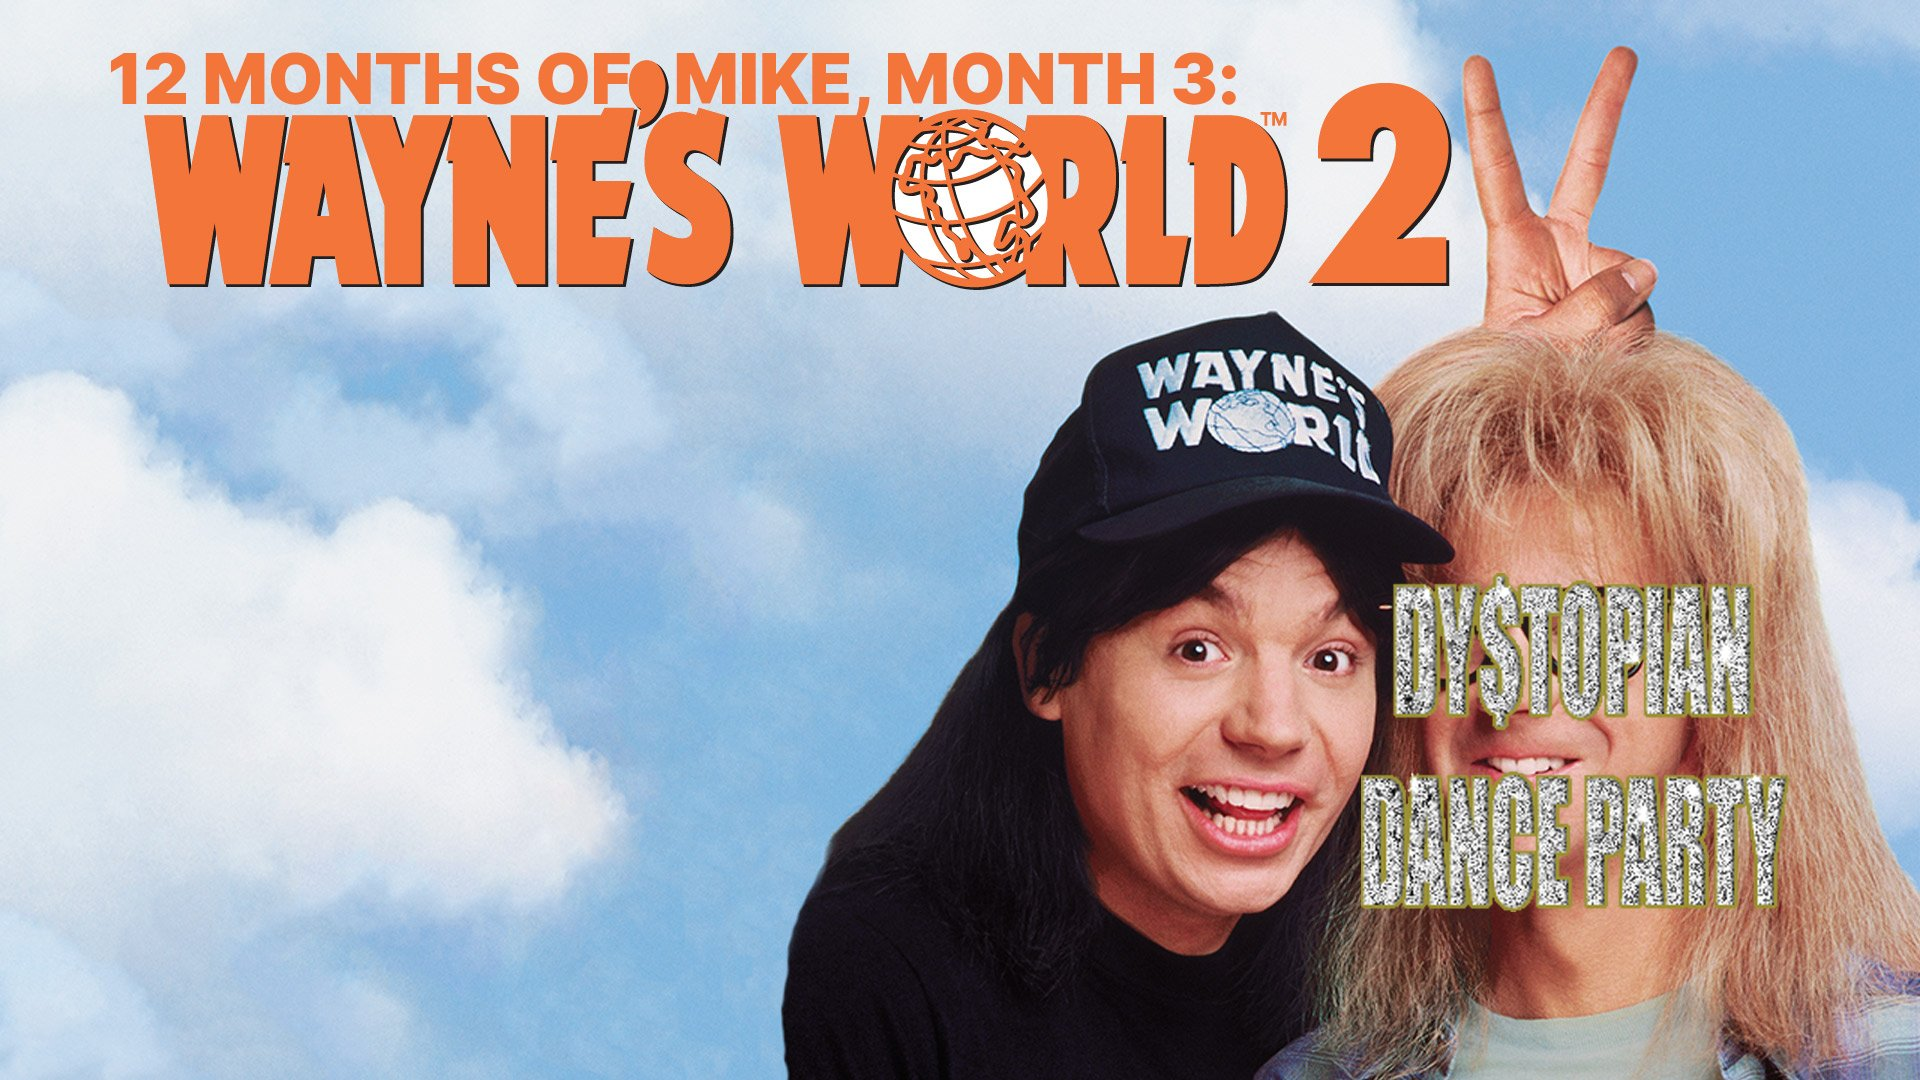 12 Months of Mike Month 3: Wayne's World 2